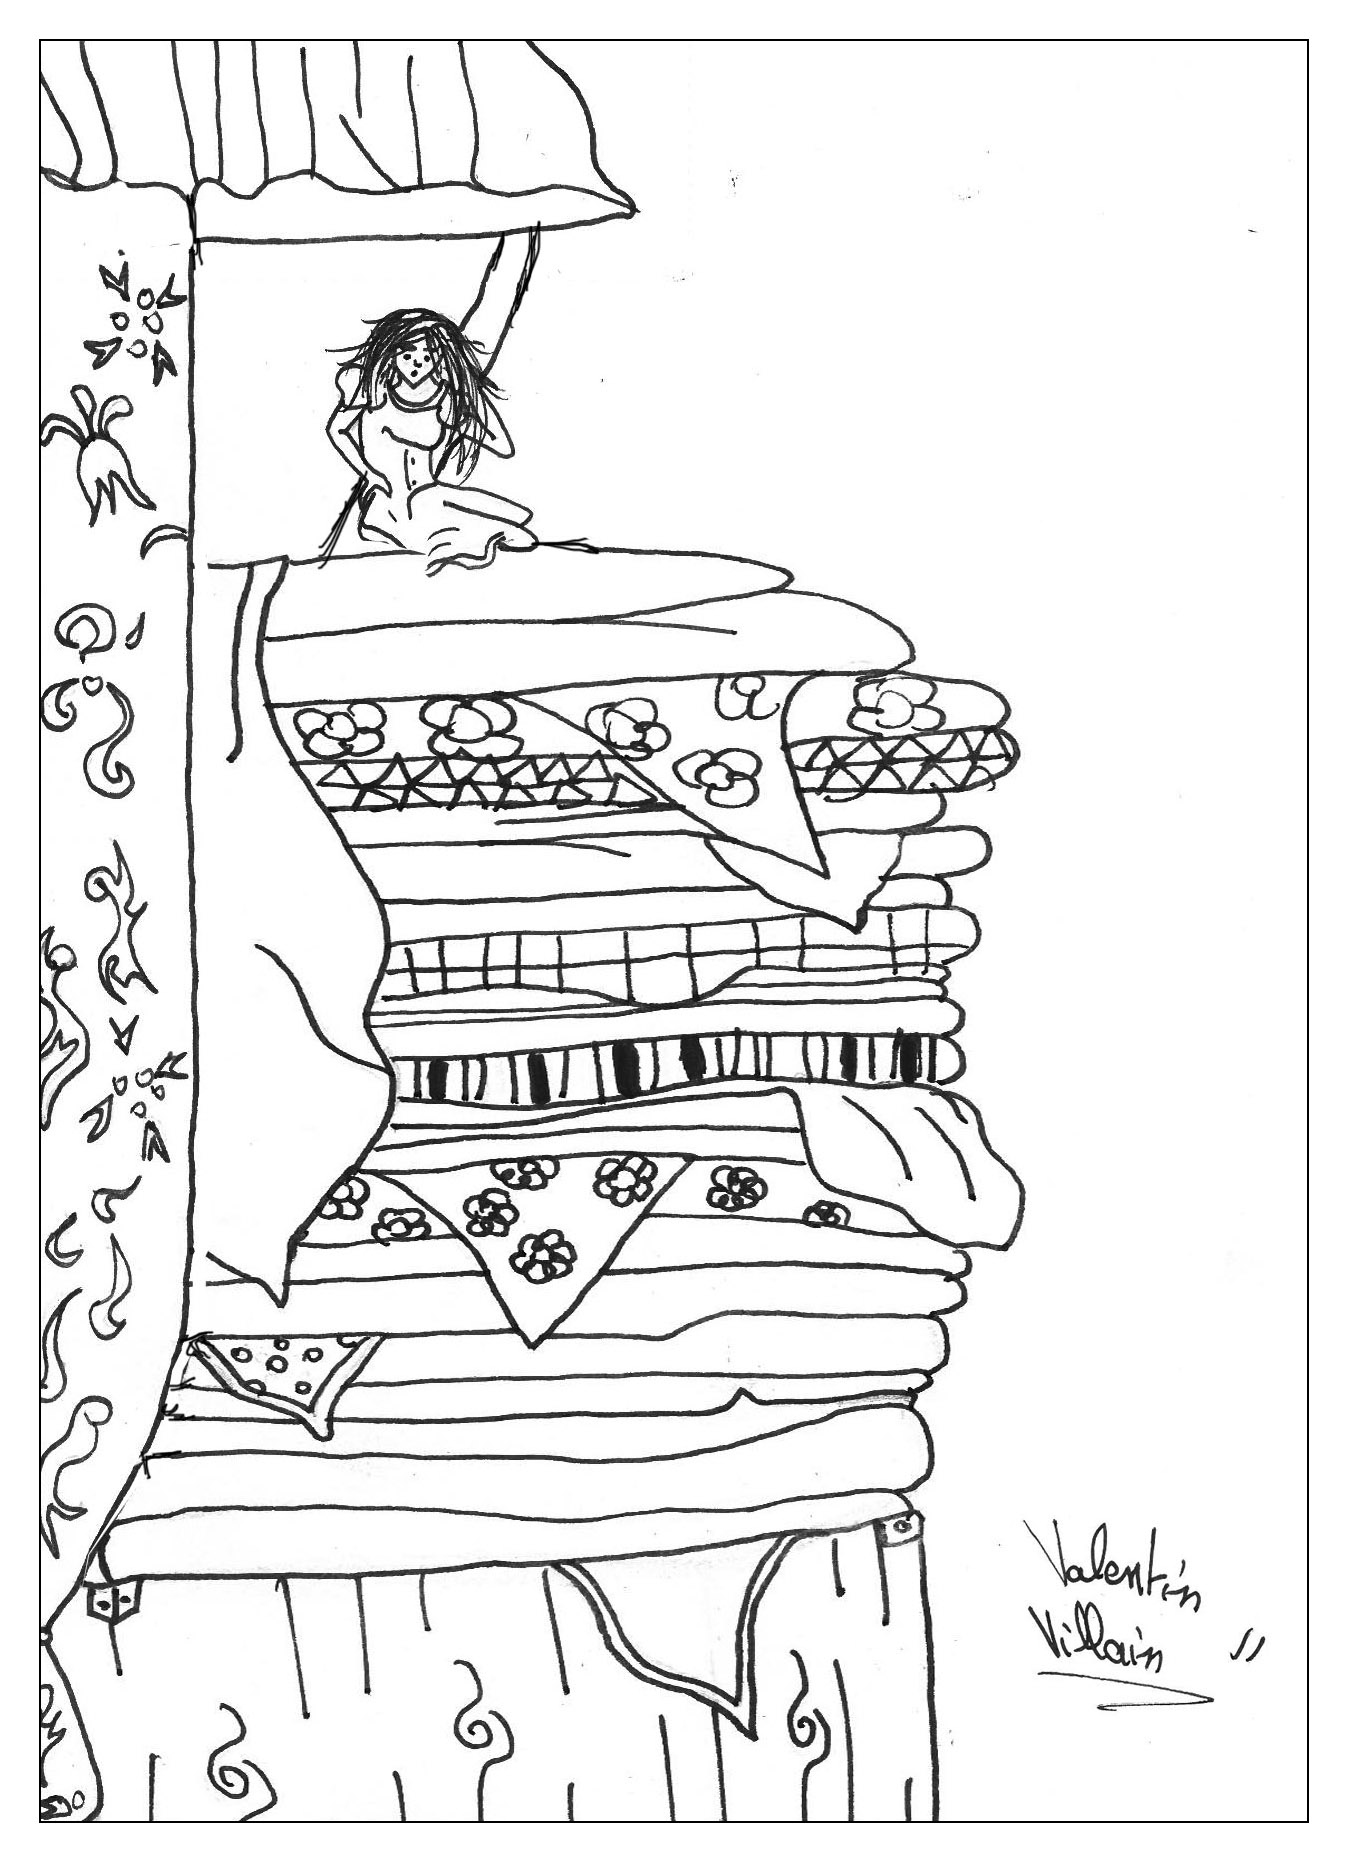 Princess Pea Fairy Tales Coloring Pages For Adults Justcolor